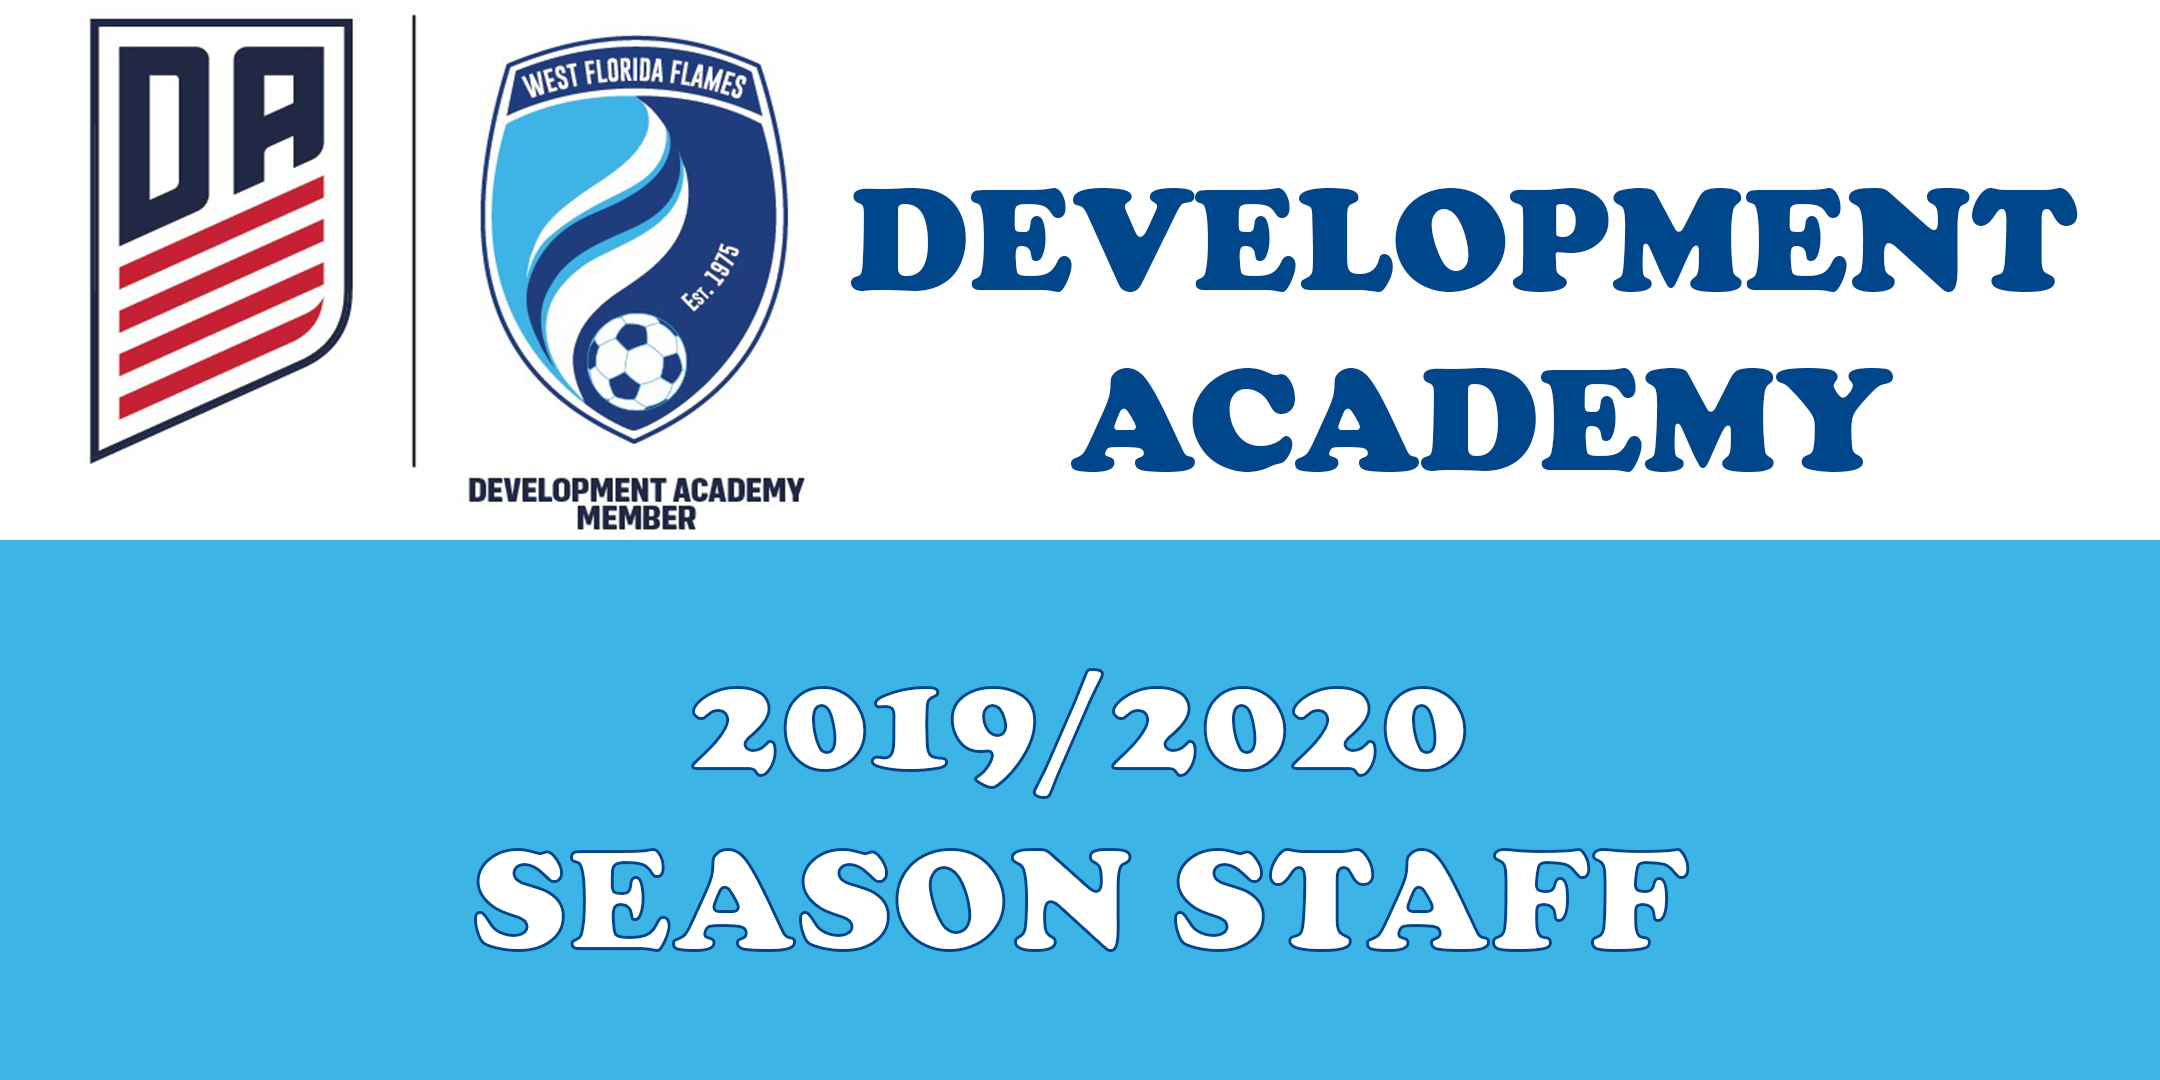 2019/2020 Season Boys and Girls Development Academy Staff